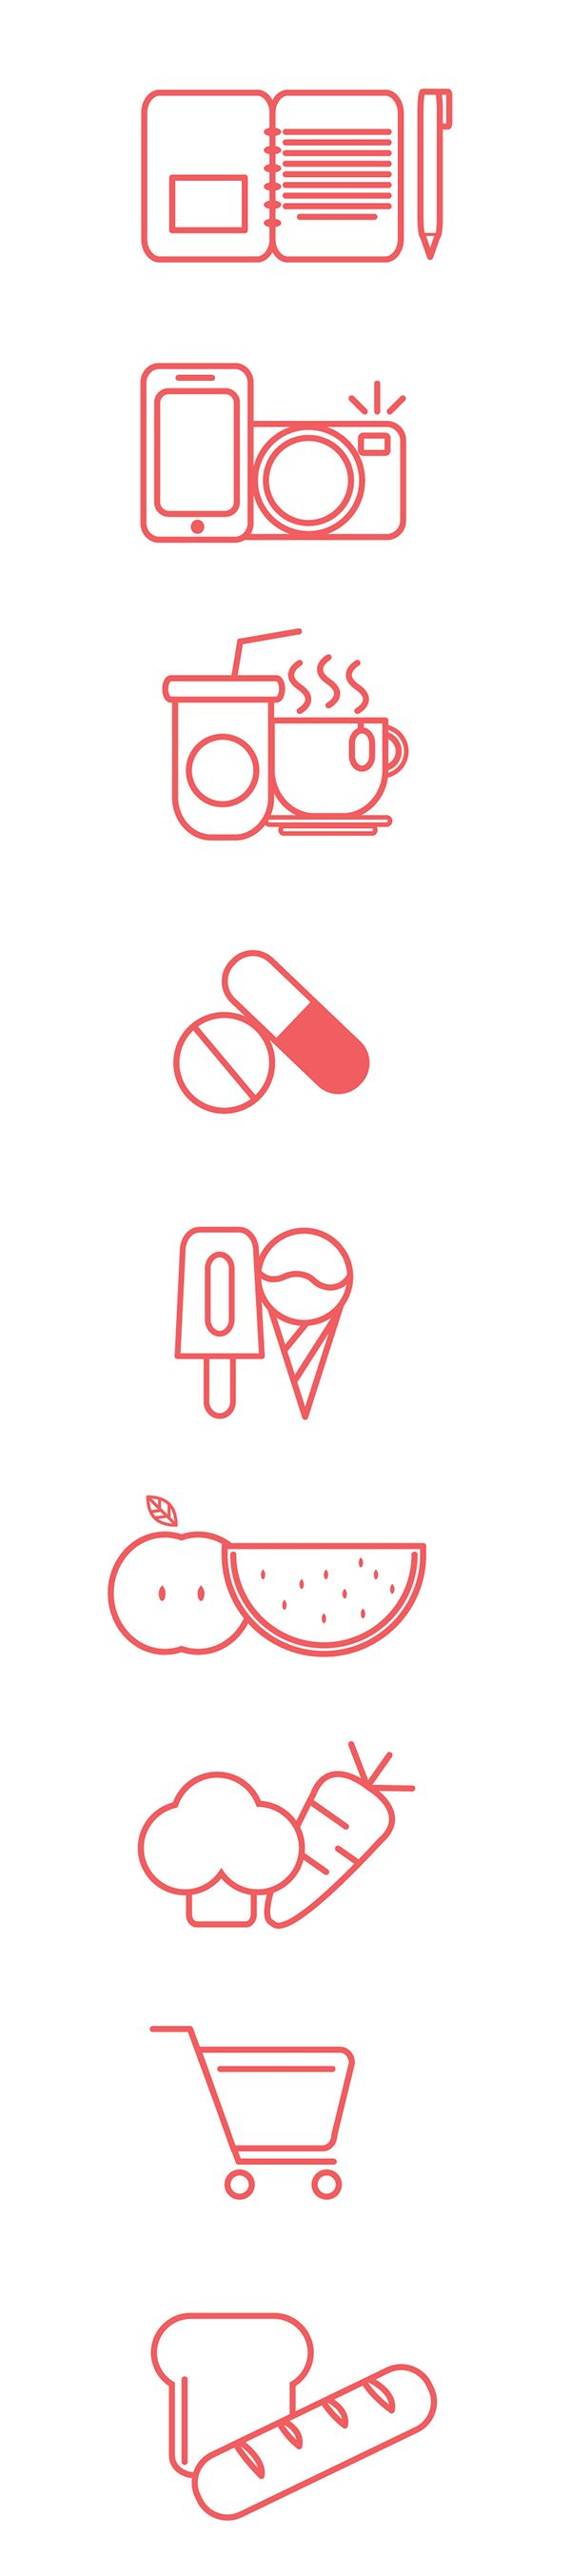 best images about graphic design cv supermarket pictograms design by jino kwee via behance